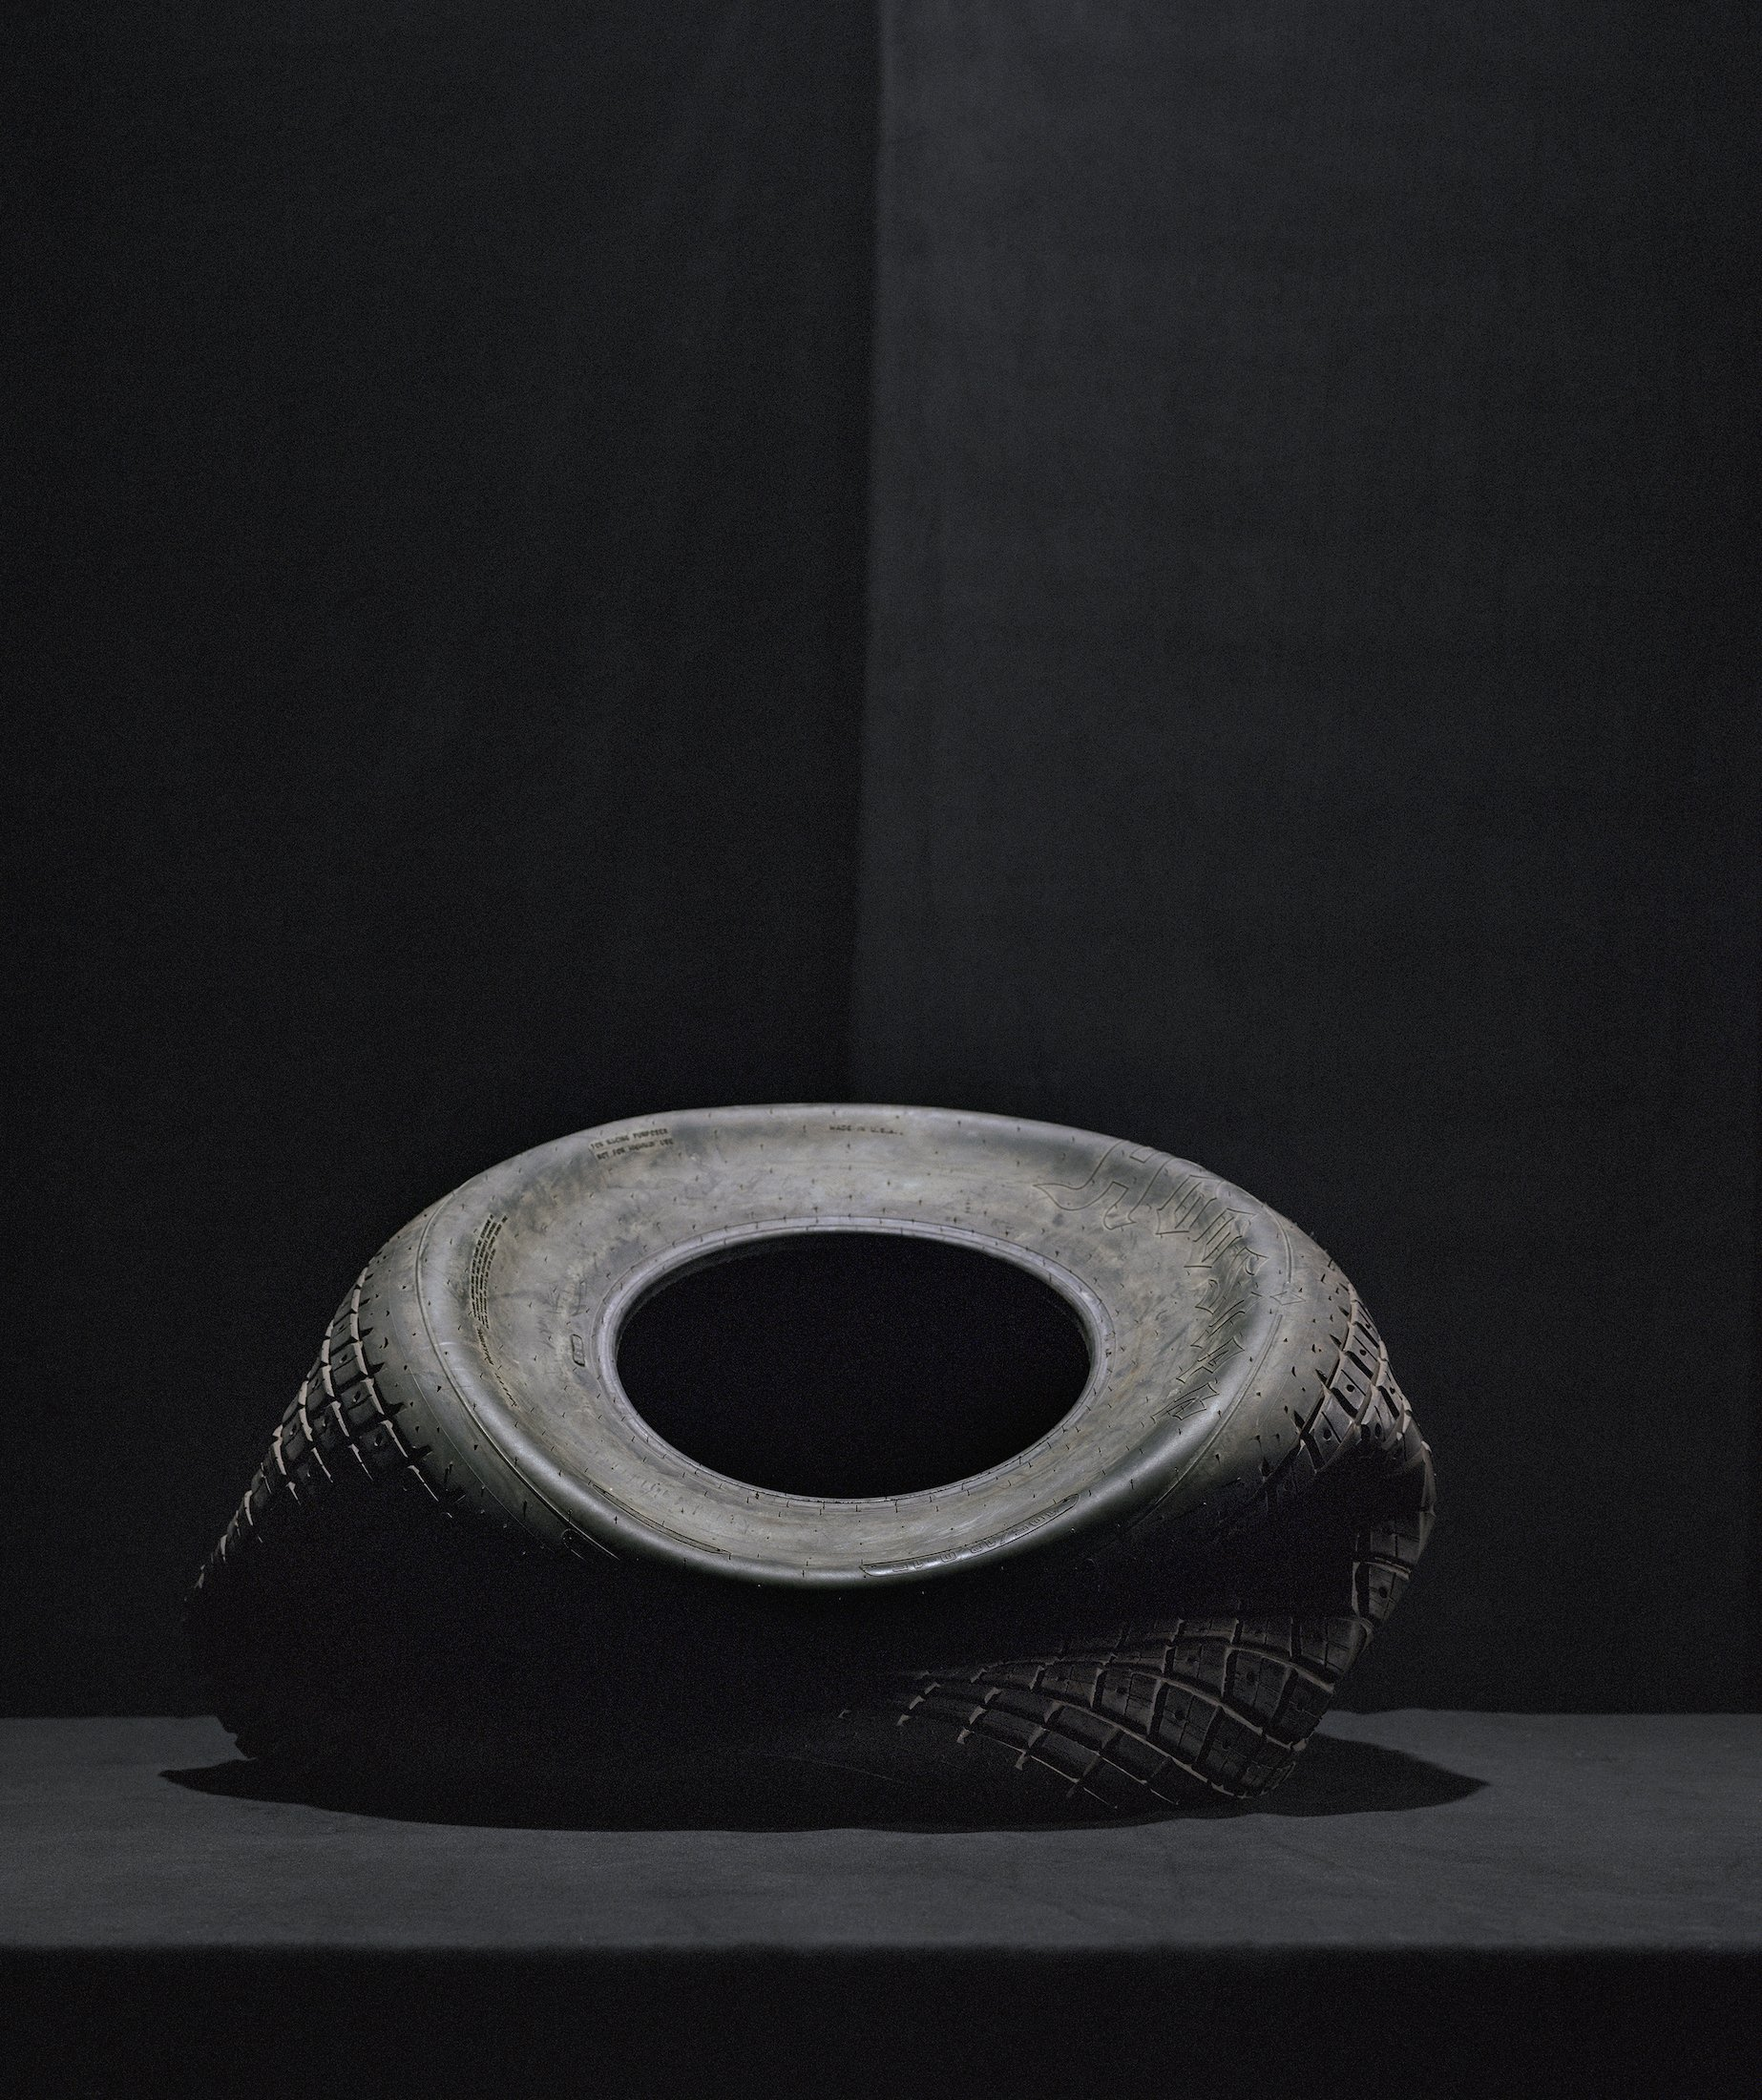 Still Life with Tire I, 2019, archival pigment print, 56.5 x 47.5 in